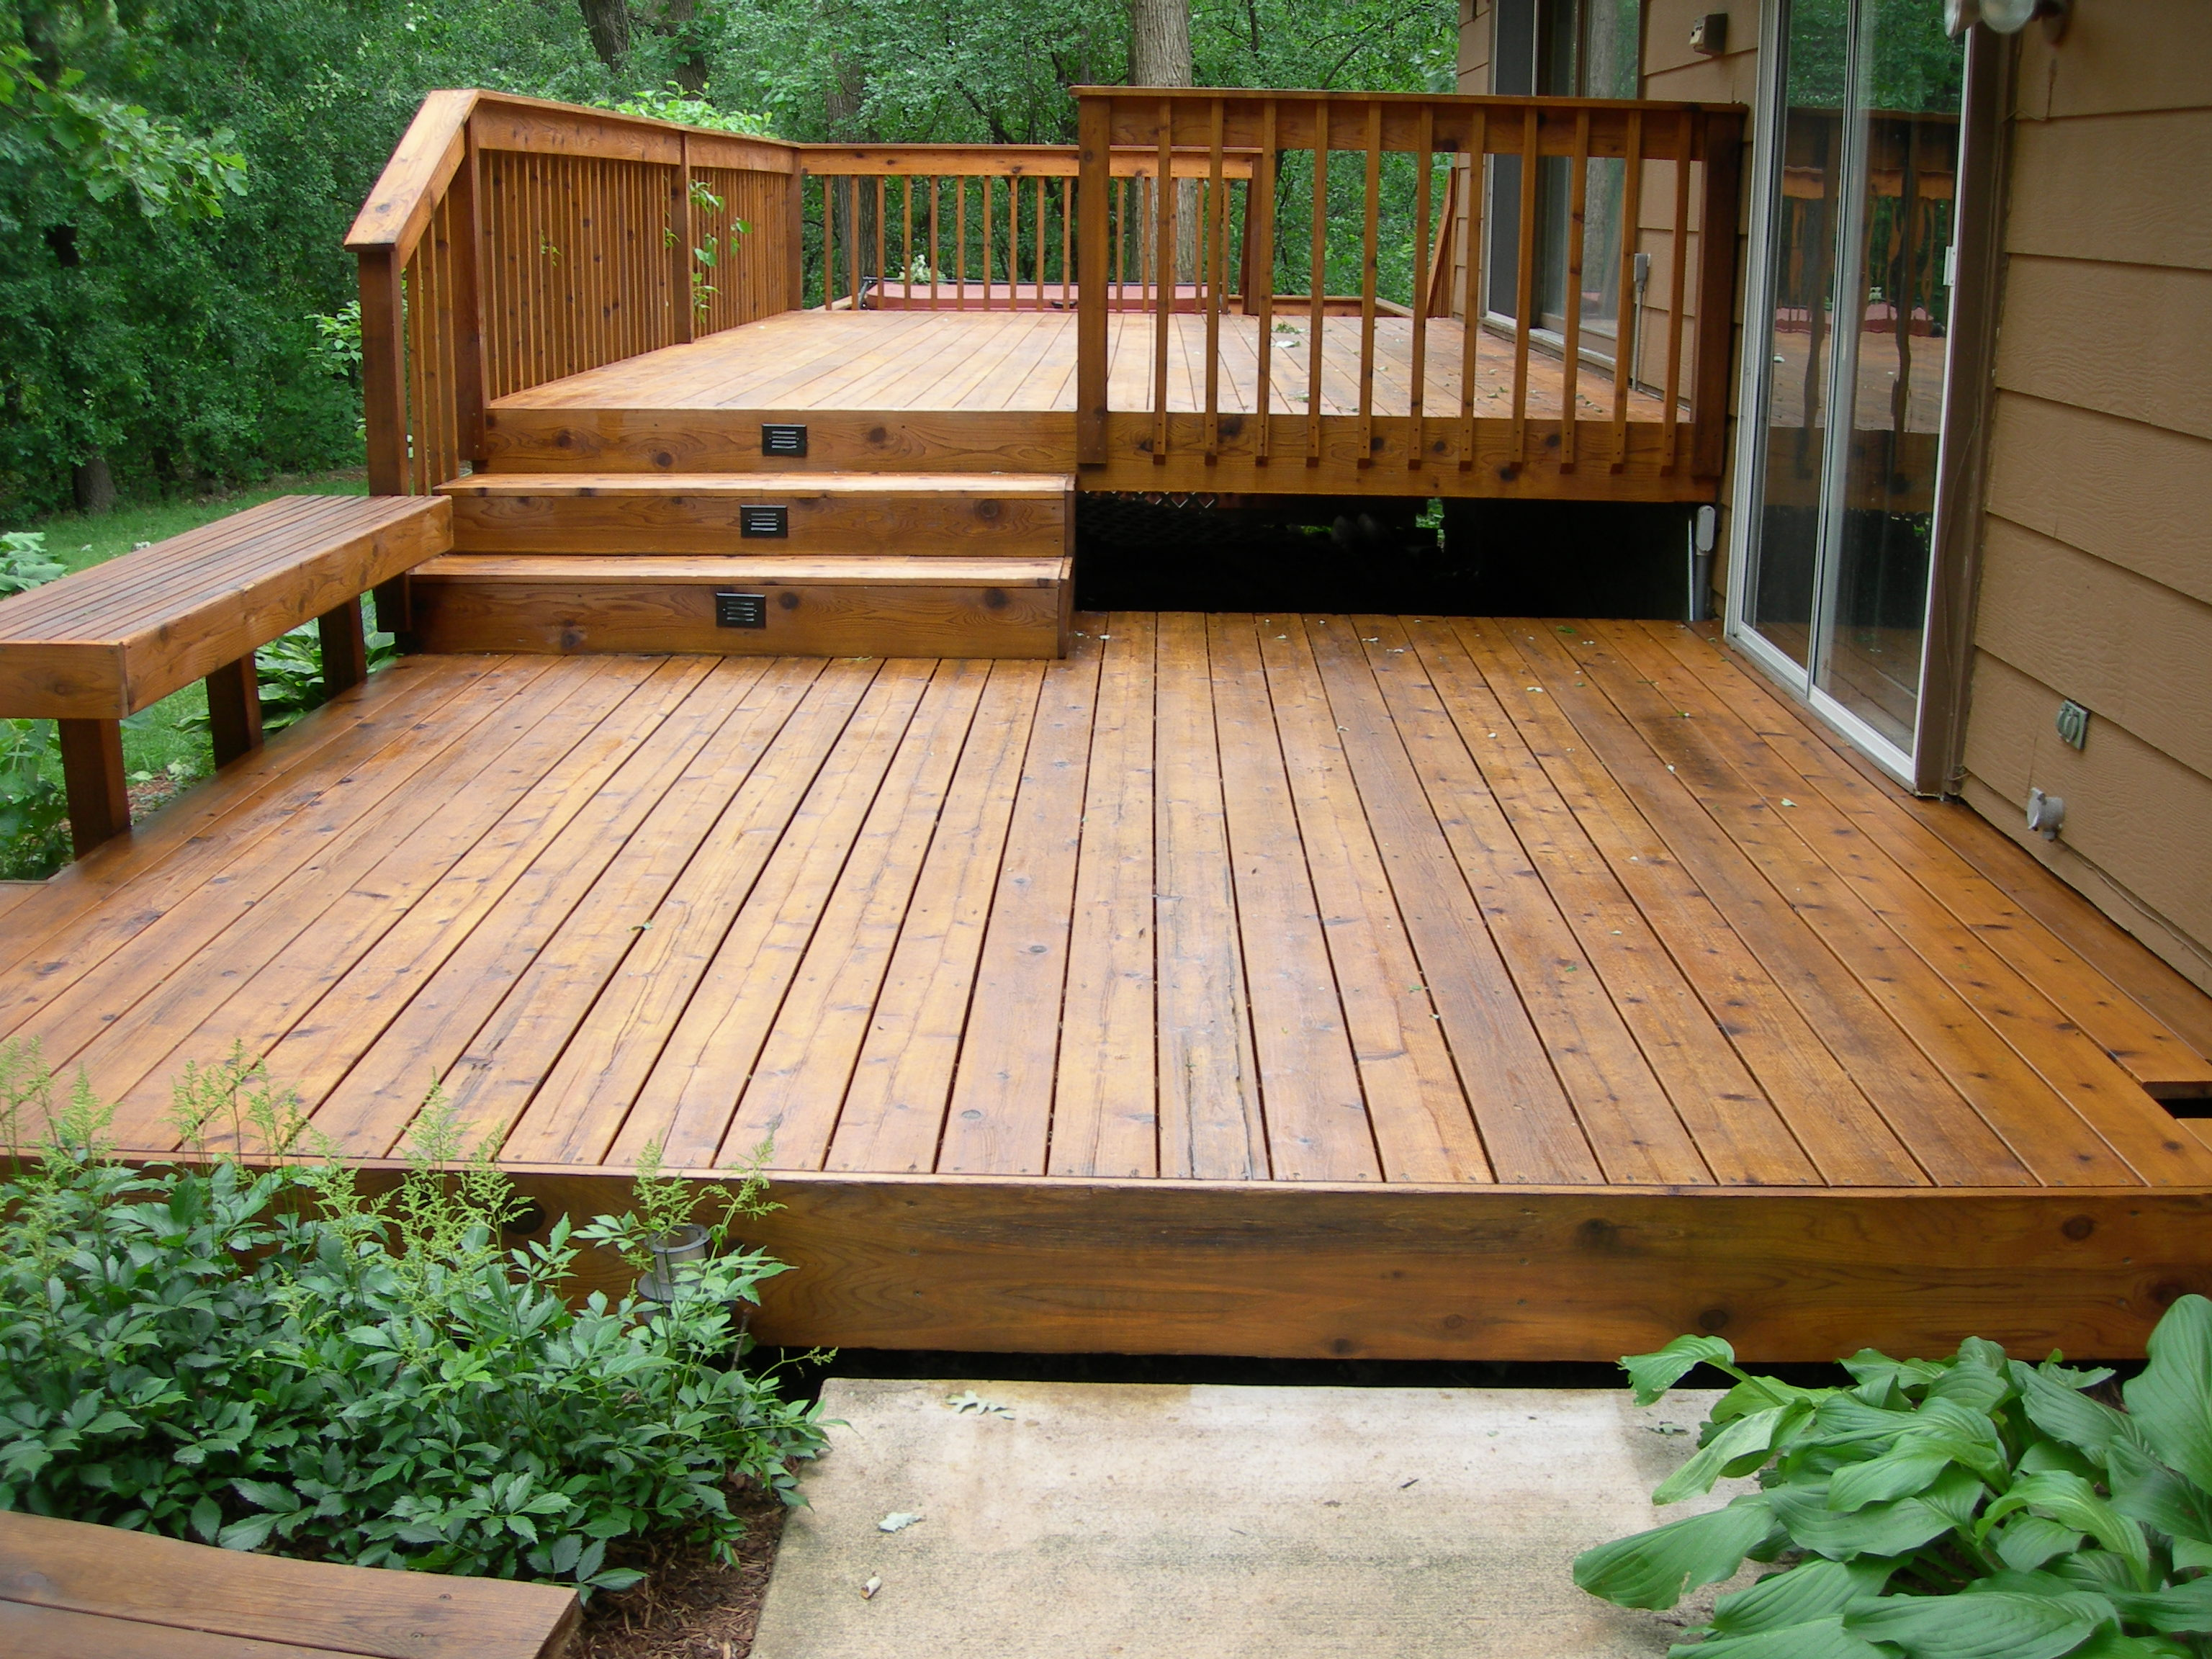 Designs Of Backyard Decks : Deck Washing and Sealing  DeckAidPro